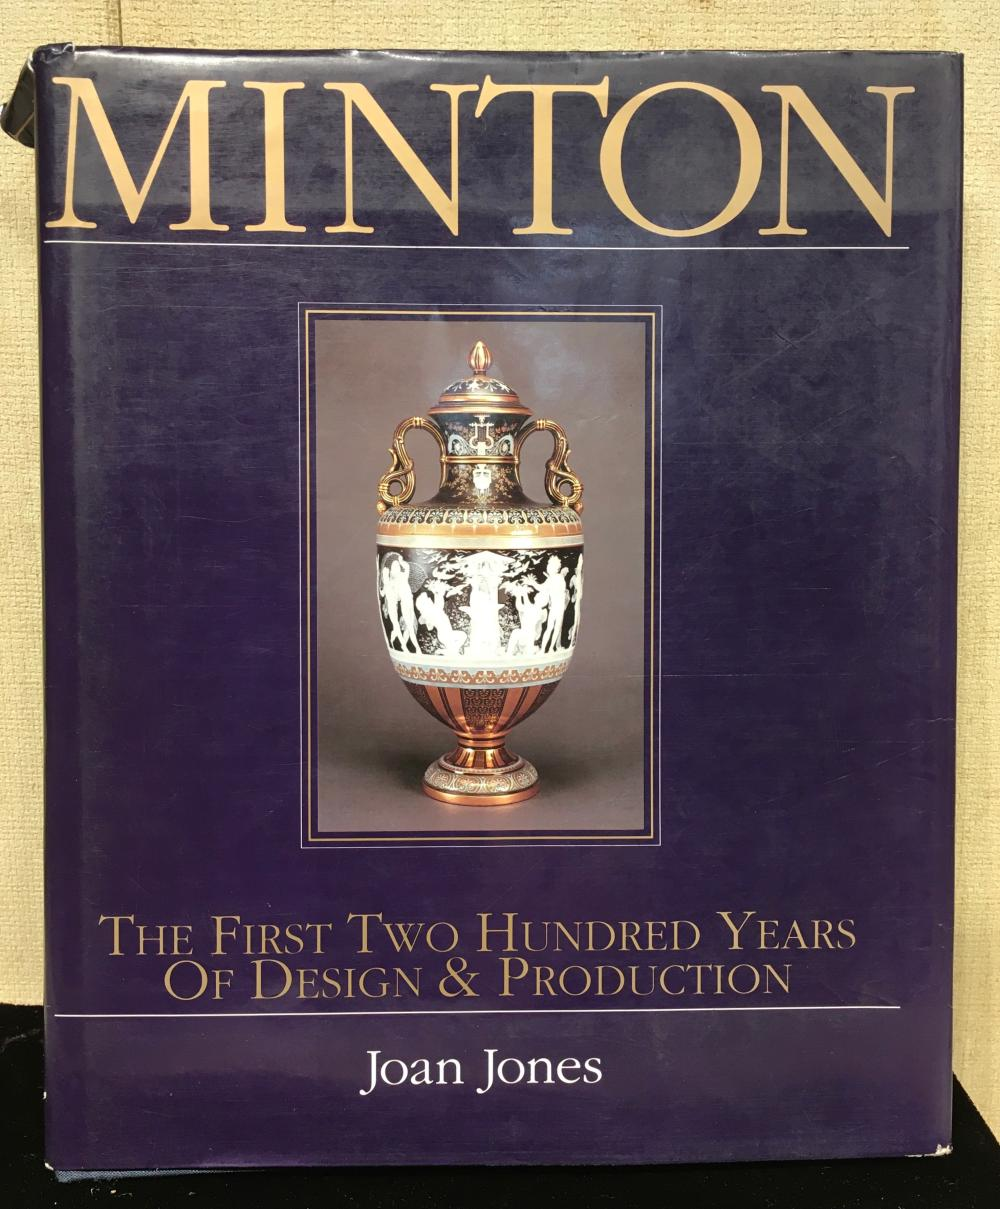 Minton: The First Two Hundred Years of Design and Production, by Joan Jones